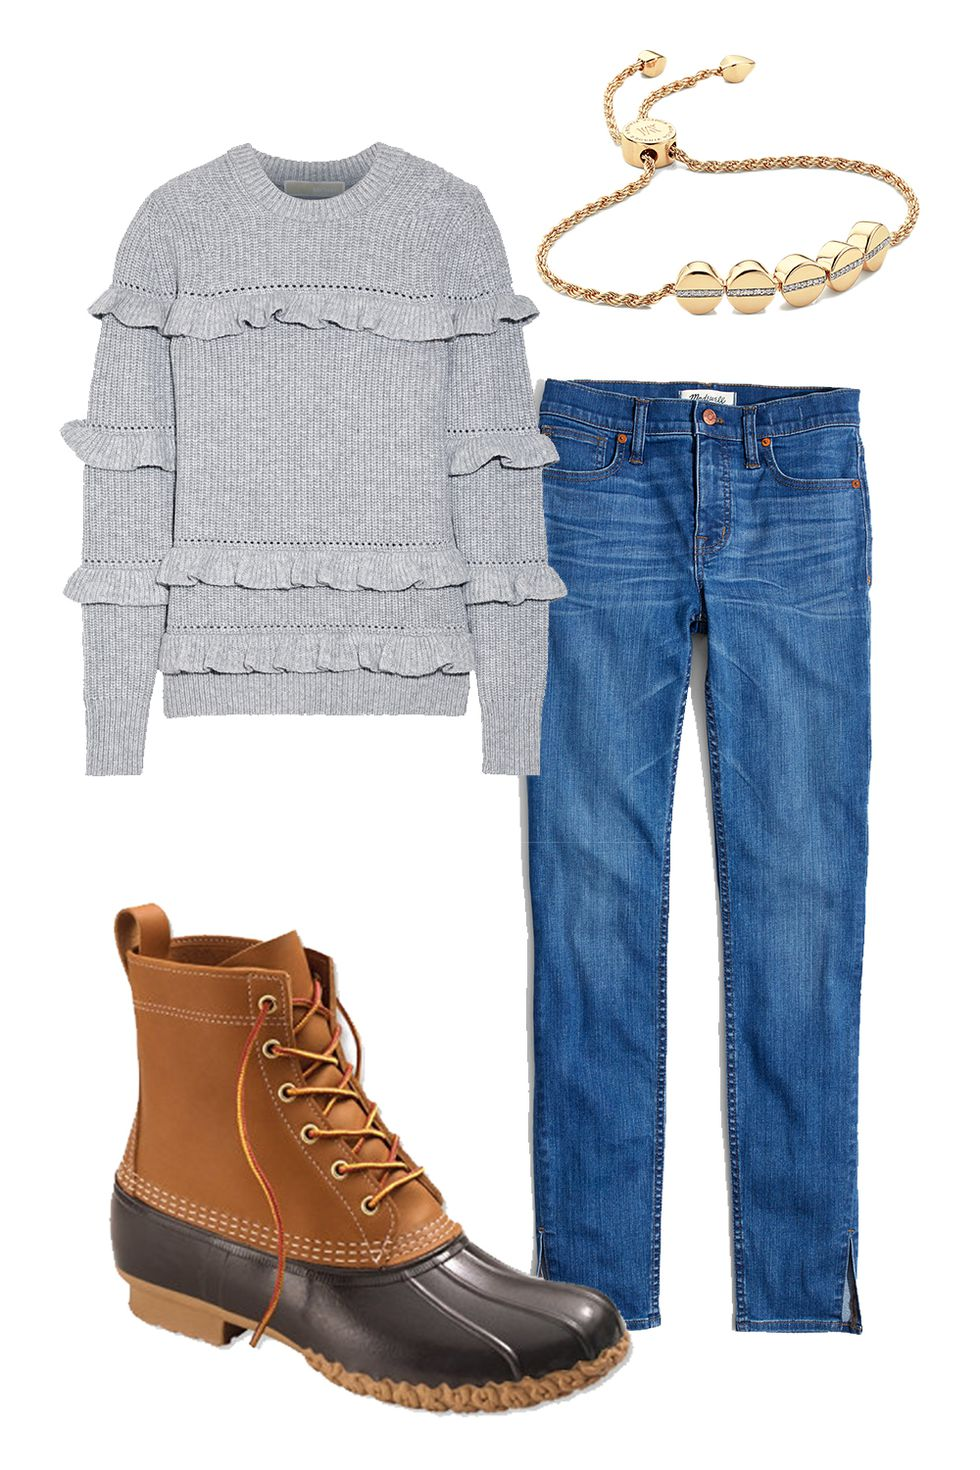 blue-med-skinny-jeans-blue-light-sweater-bracelet-tan-shoe-booties-rain-weather-fall-winter-thanksgiving-outfits-holidays-weekend.jpg